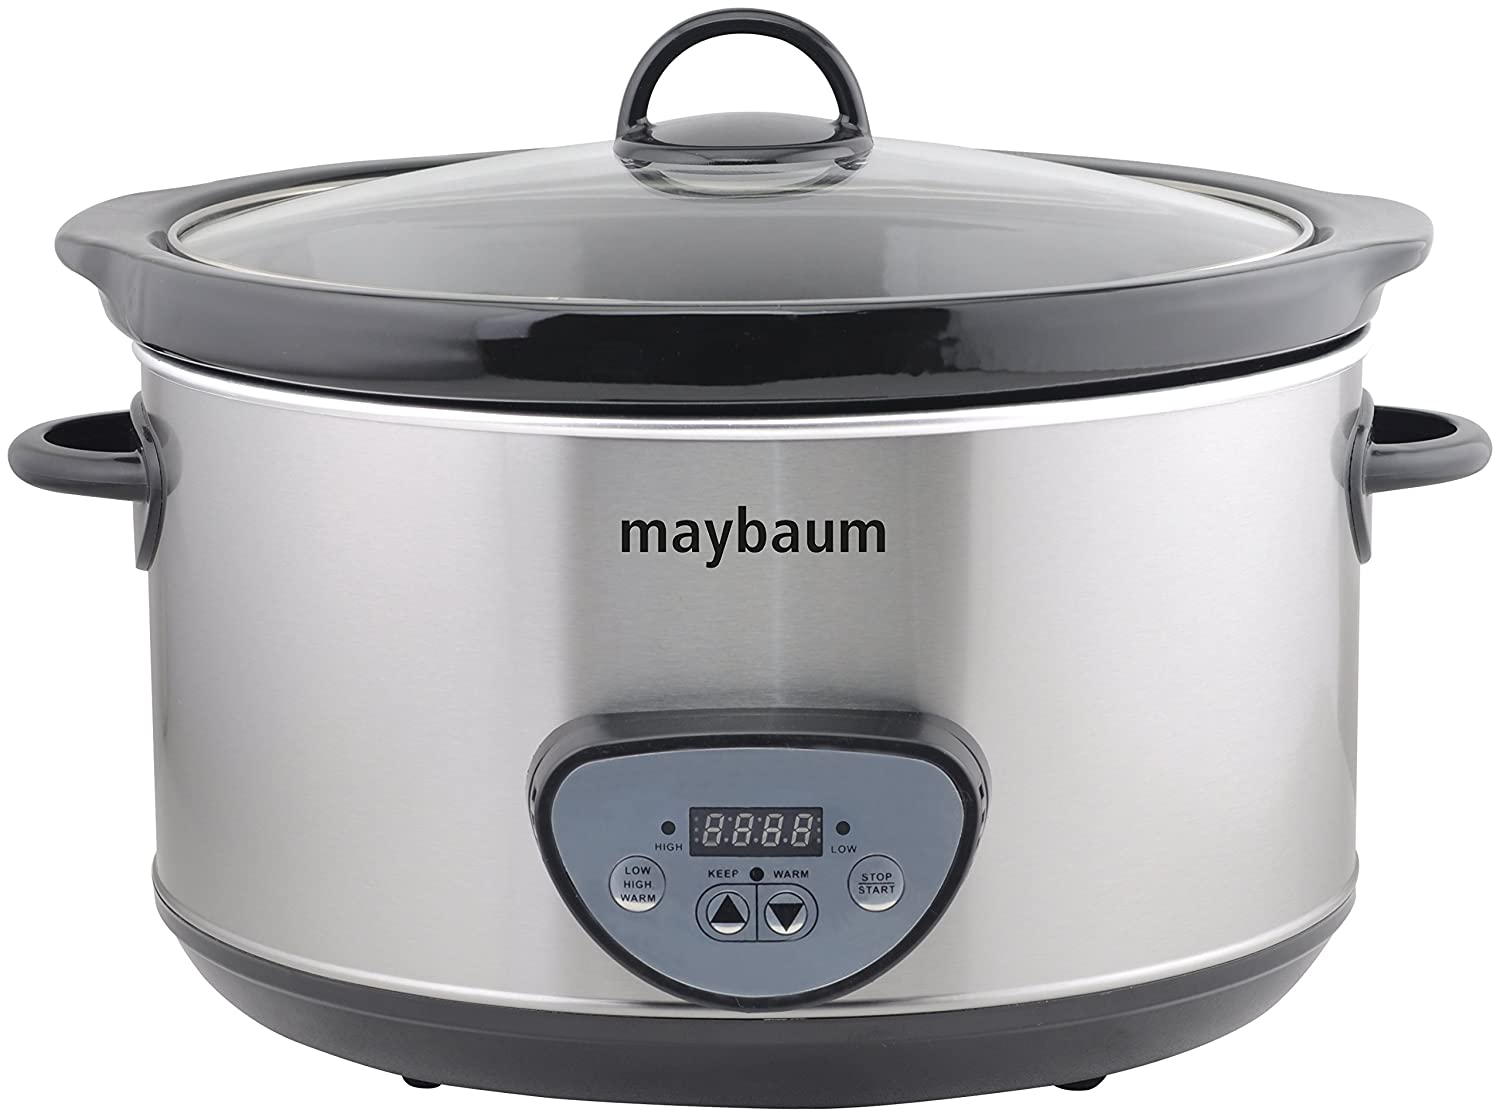 Maybaum Mayb SC 1 Slow Cooker digitale slow-cooker/per 1001 tribunali, 4,5 l, argento